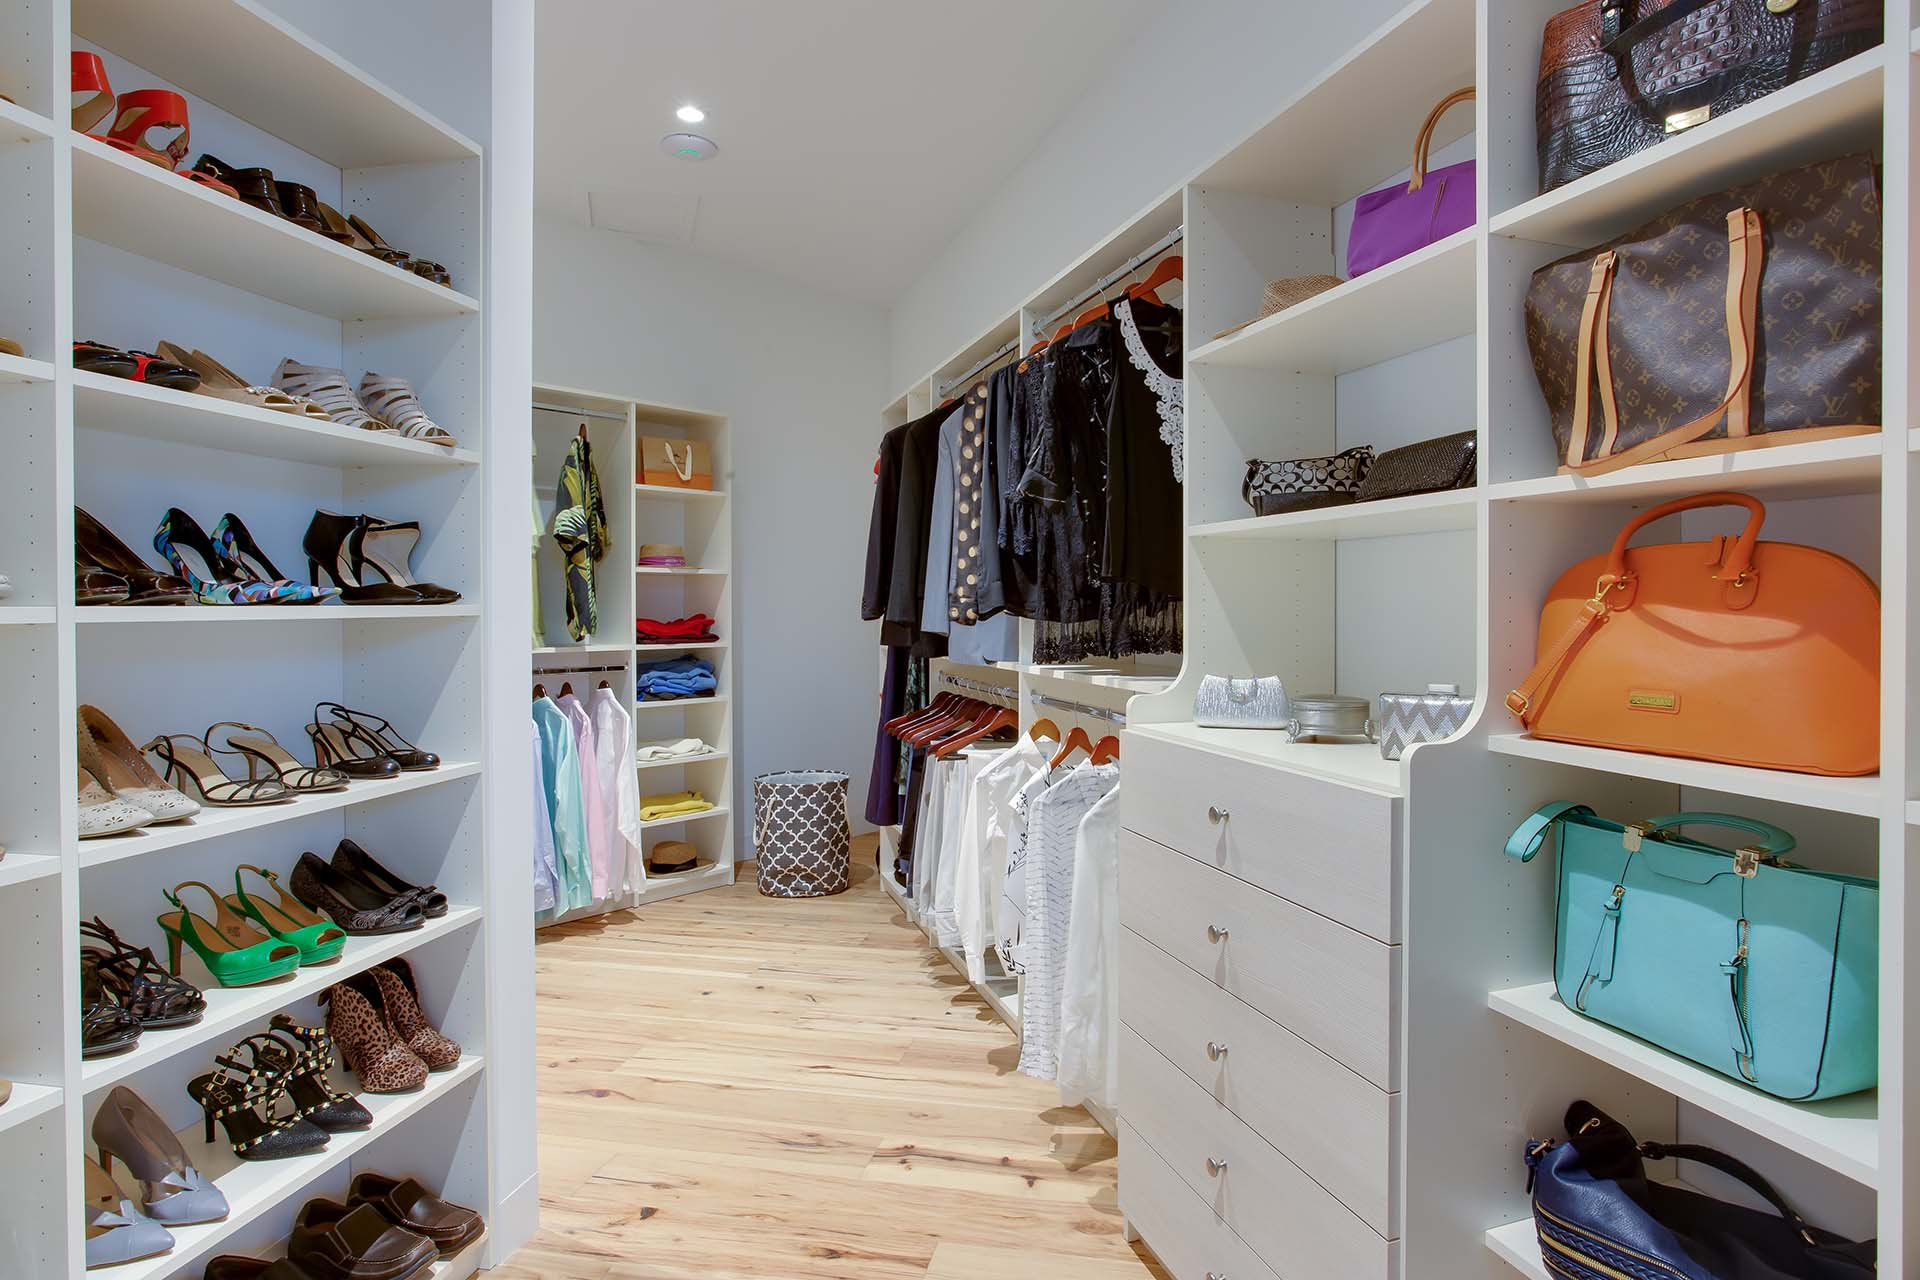 source ky size home closet shelves factory interior of throughout full concepts questions in reach captivating organizing lexington mas design mans modern a have